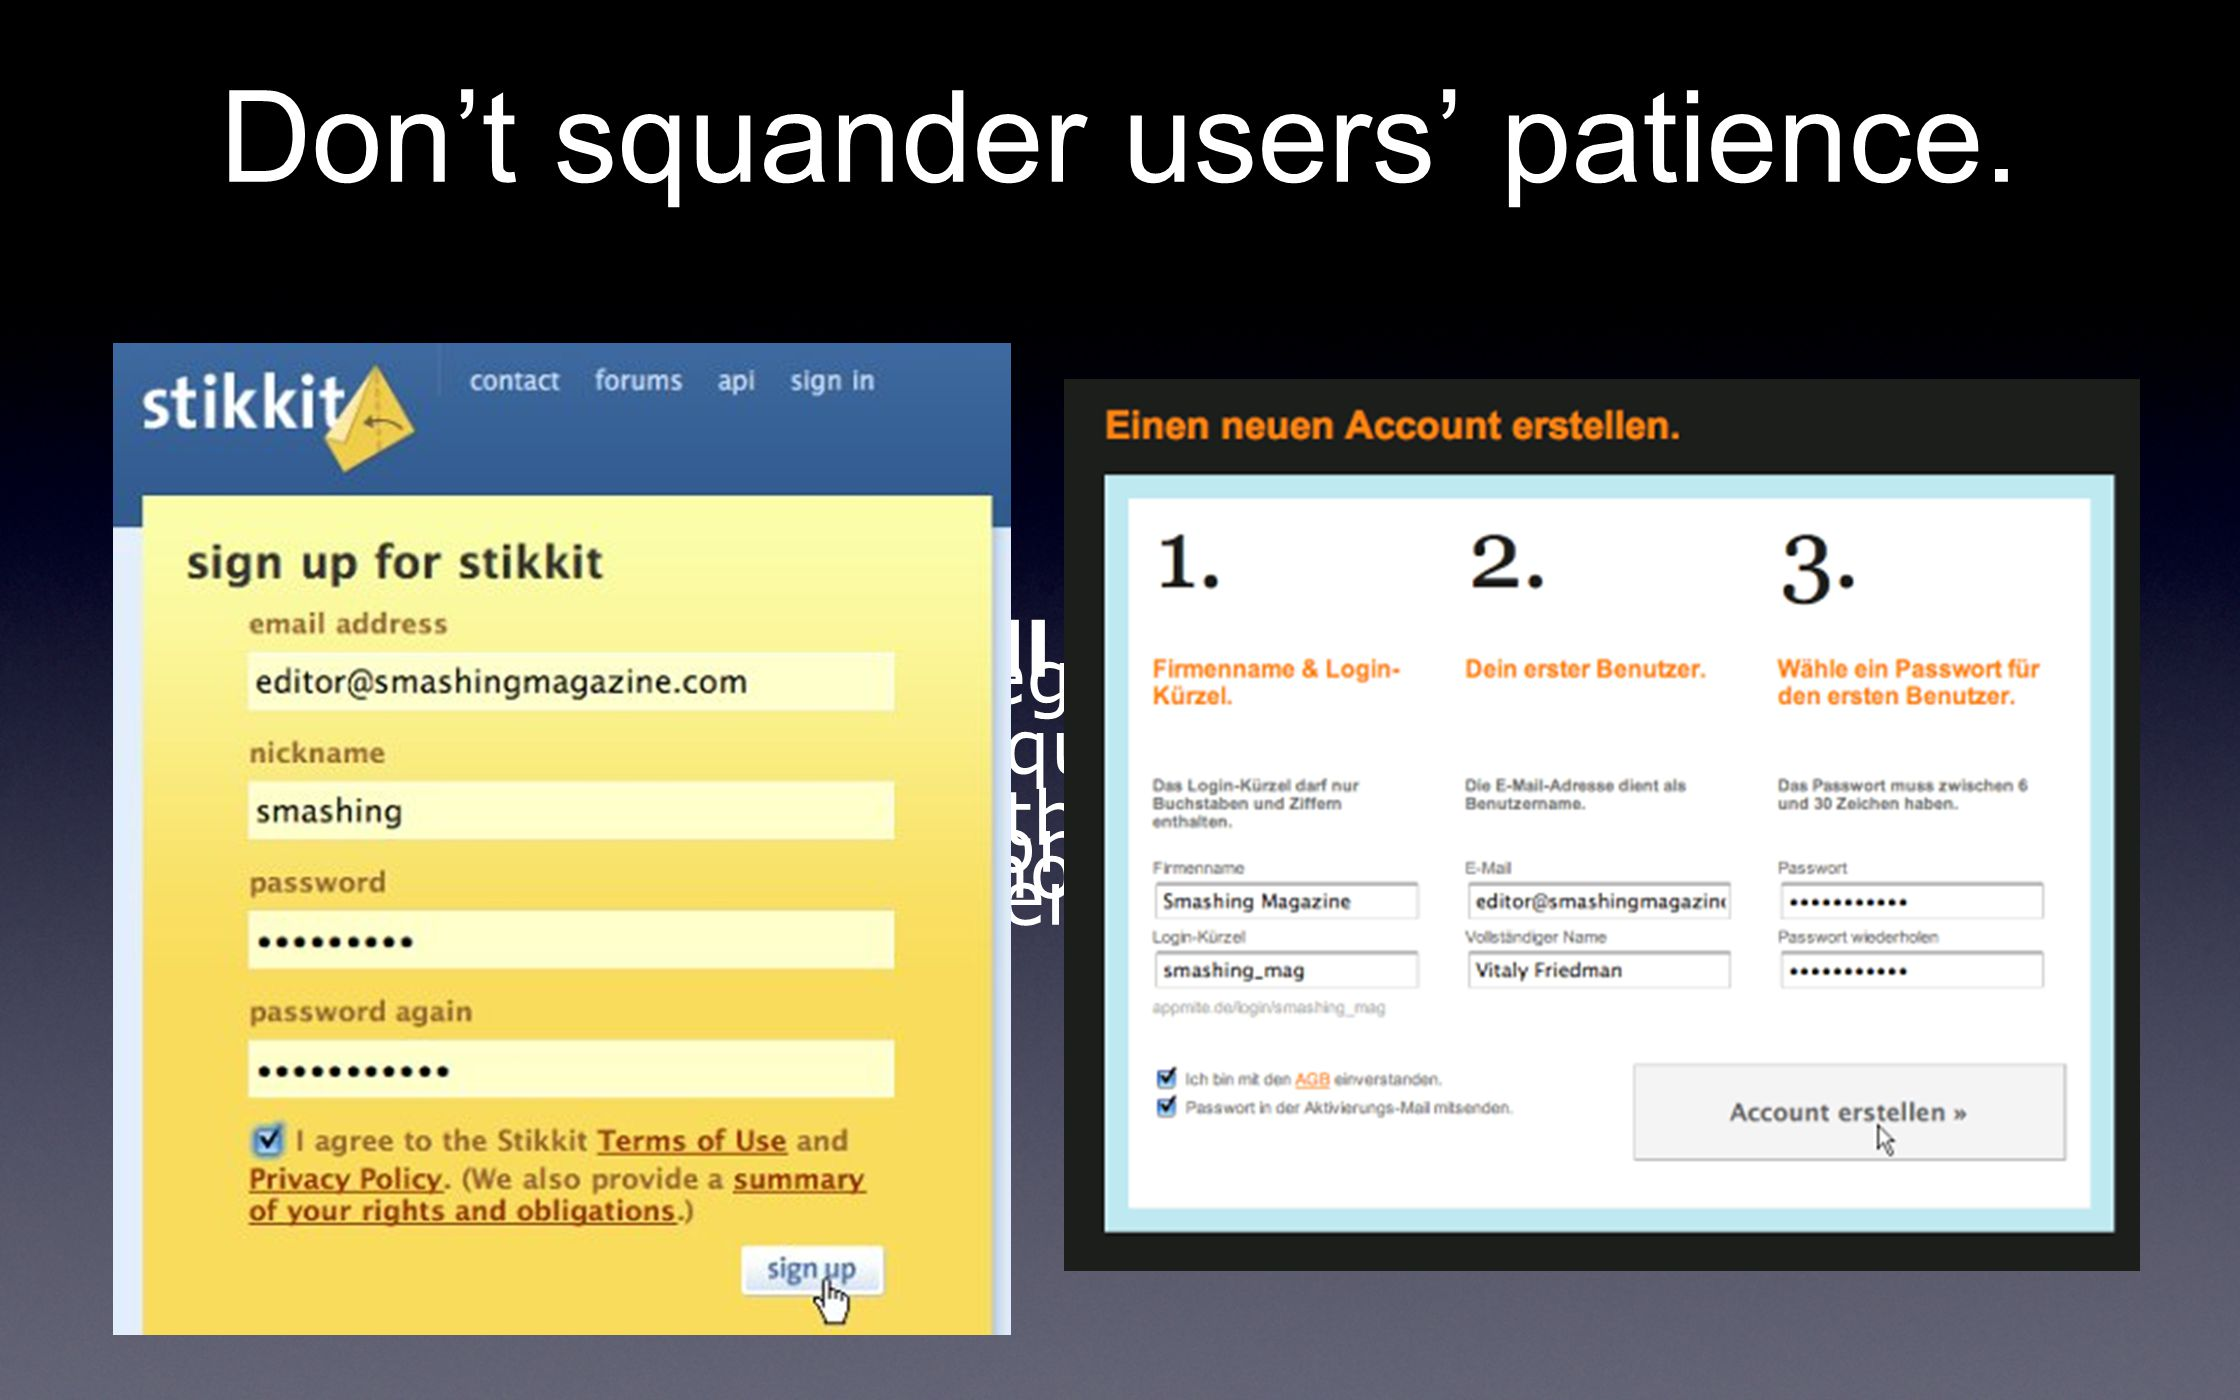 Don't squander users' patience.